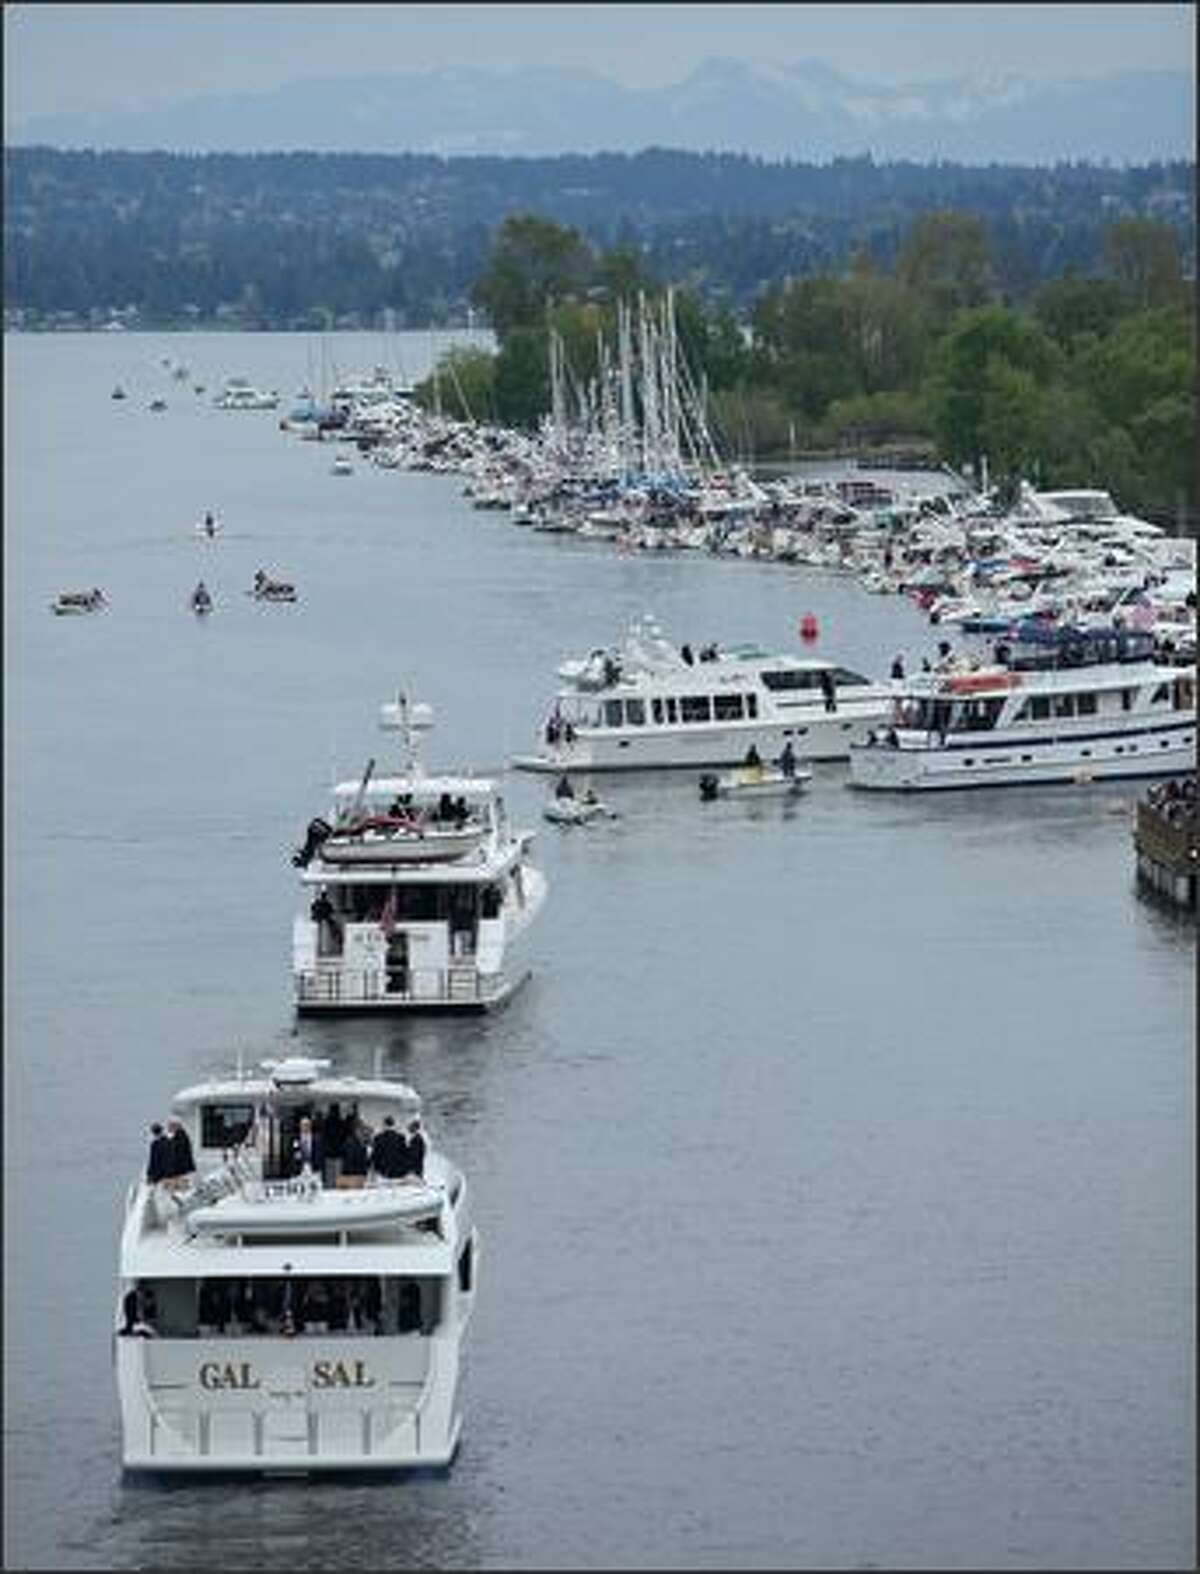 Boaters move around on Lake Washington during the opening of the boating season Saturday. (Tim Willis/seattlepi.com)